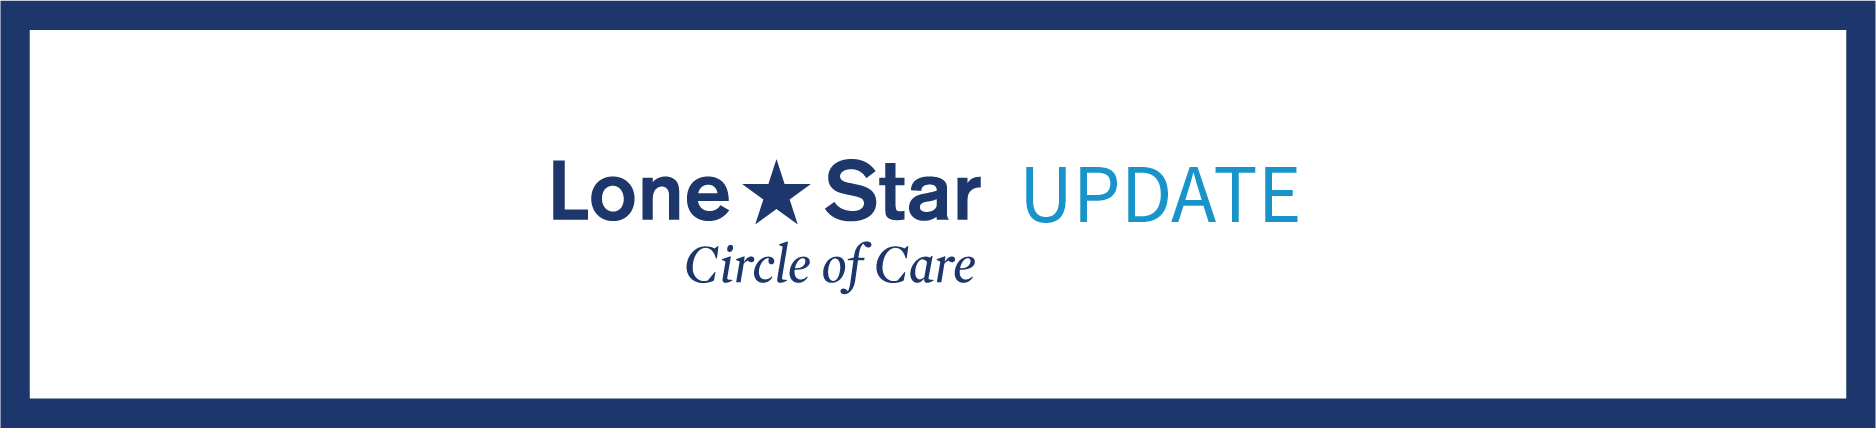 COVID-19 Update: To Our Lone Star Circle of Care Patients and Friends